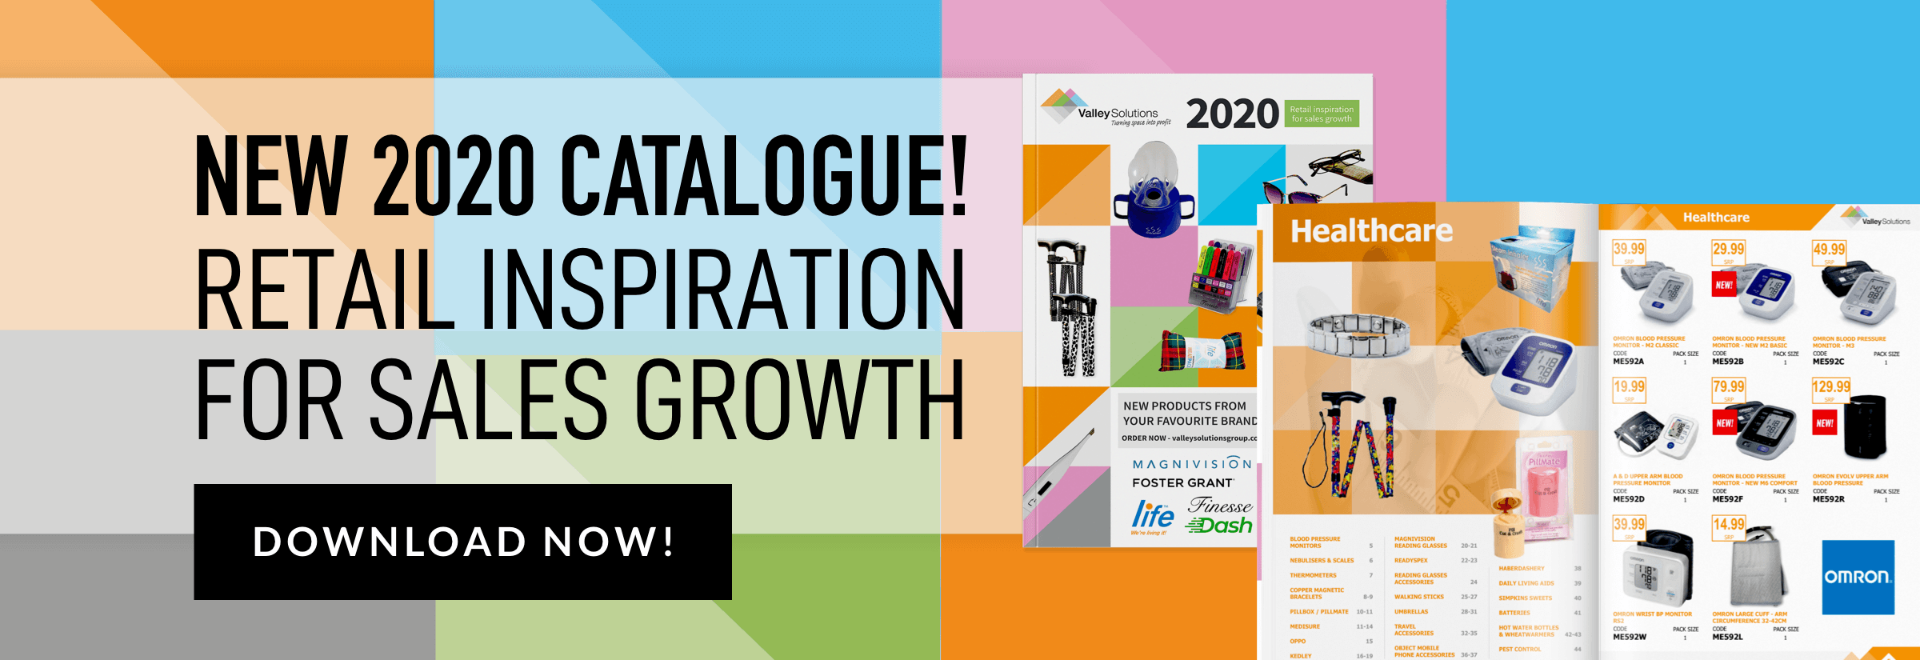 New 2020 catalogue! Retail inspiration for sales growth. Download now.